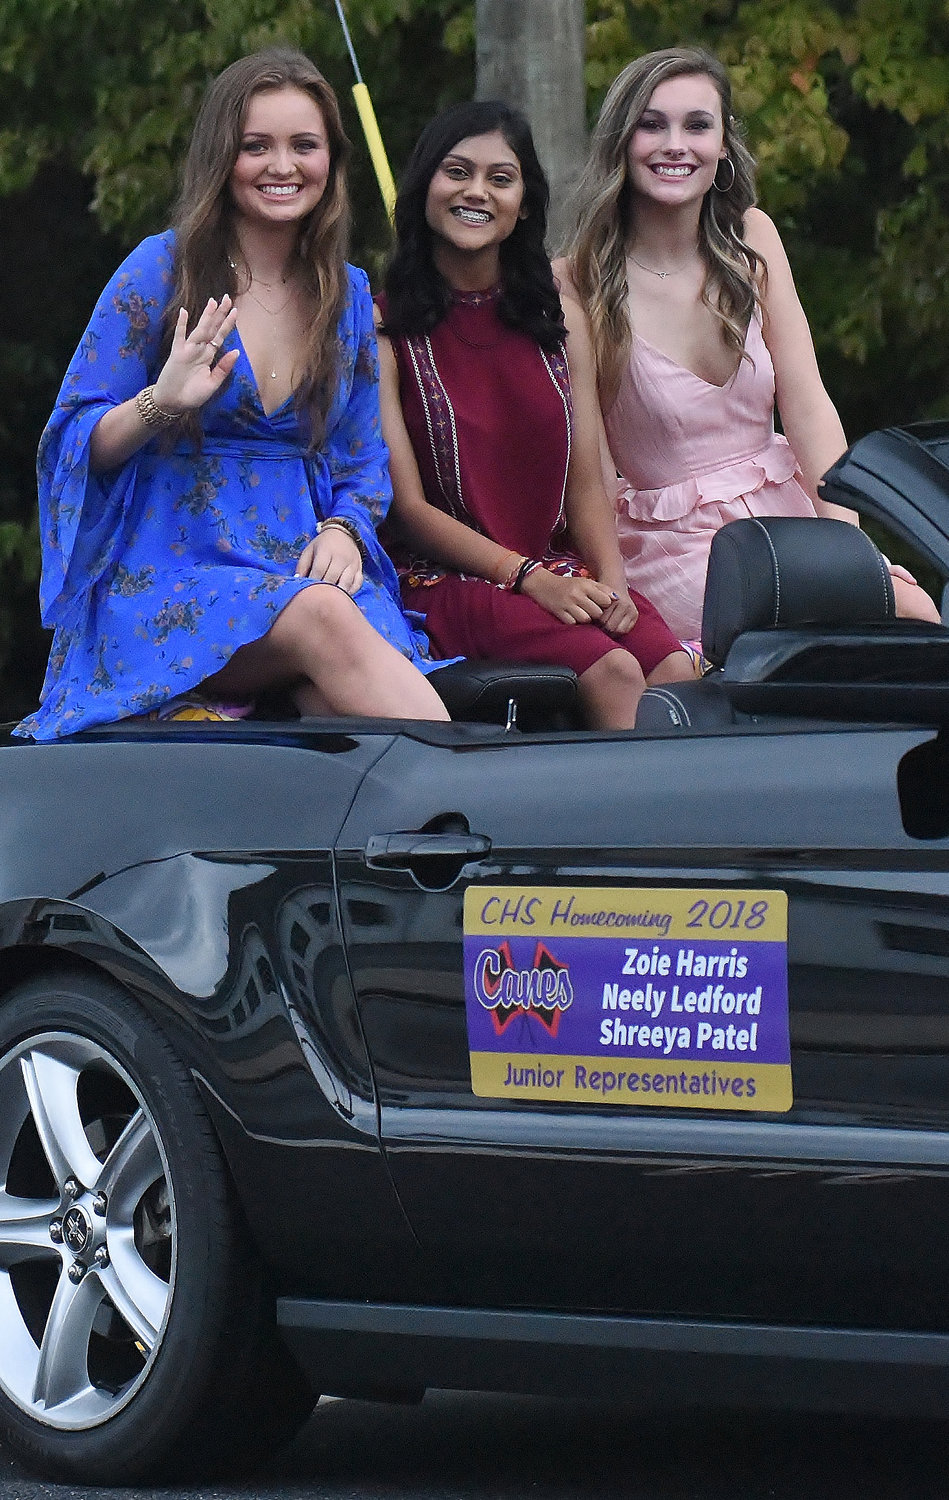 Zoie Harris, Shreeya Patel and Neely Ledford represent the Junior Class during the CHS Homecoming parade Thursday.